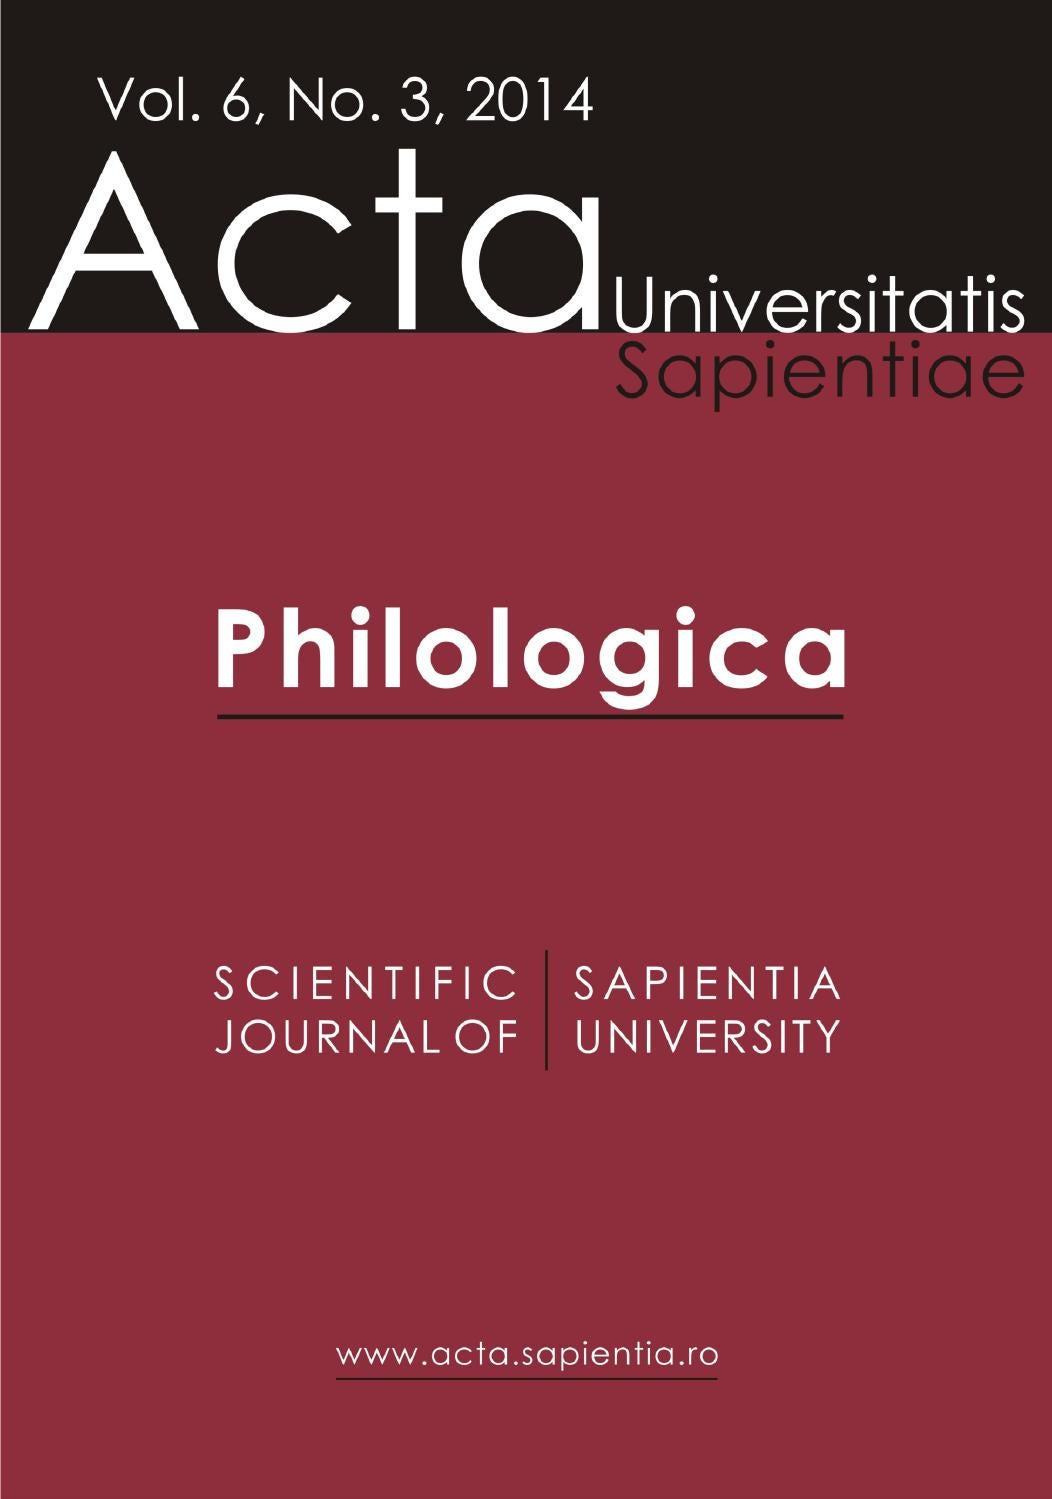 Philologica Vol. 6, No. 3, 2014 by Acta Universitatis Sapientiae ...